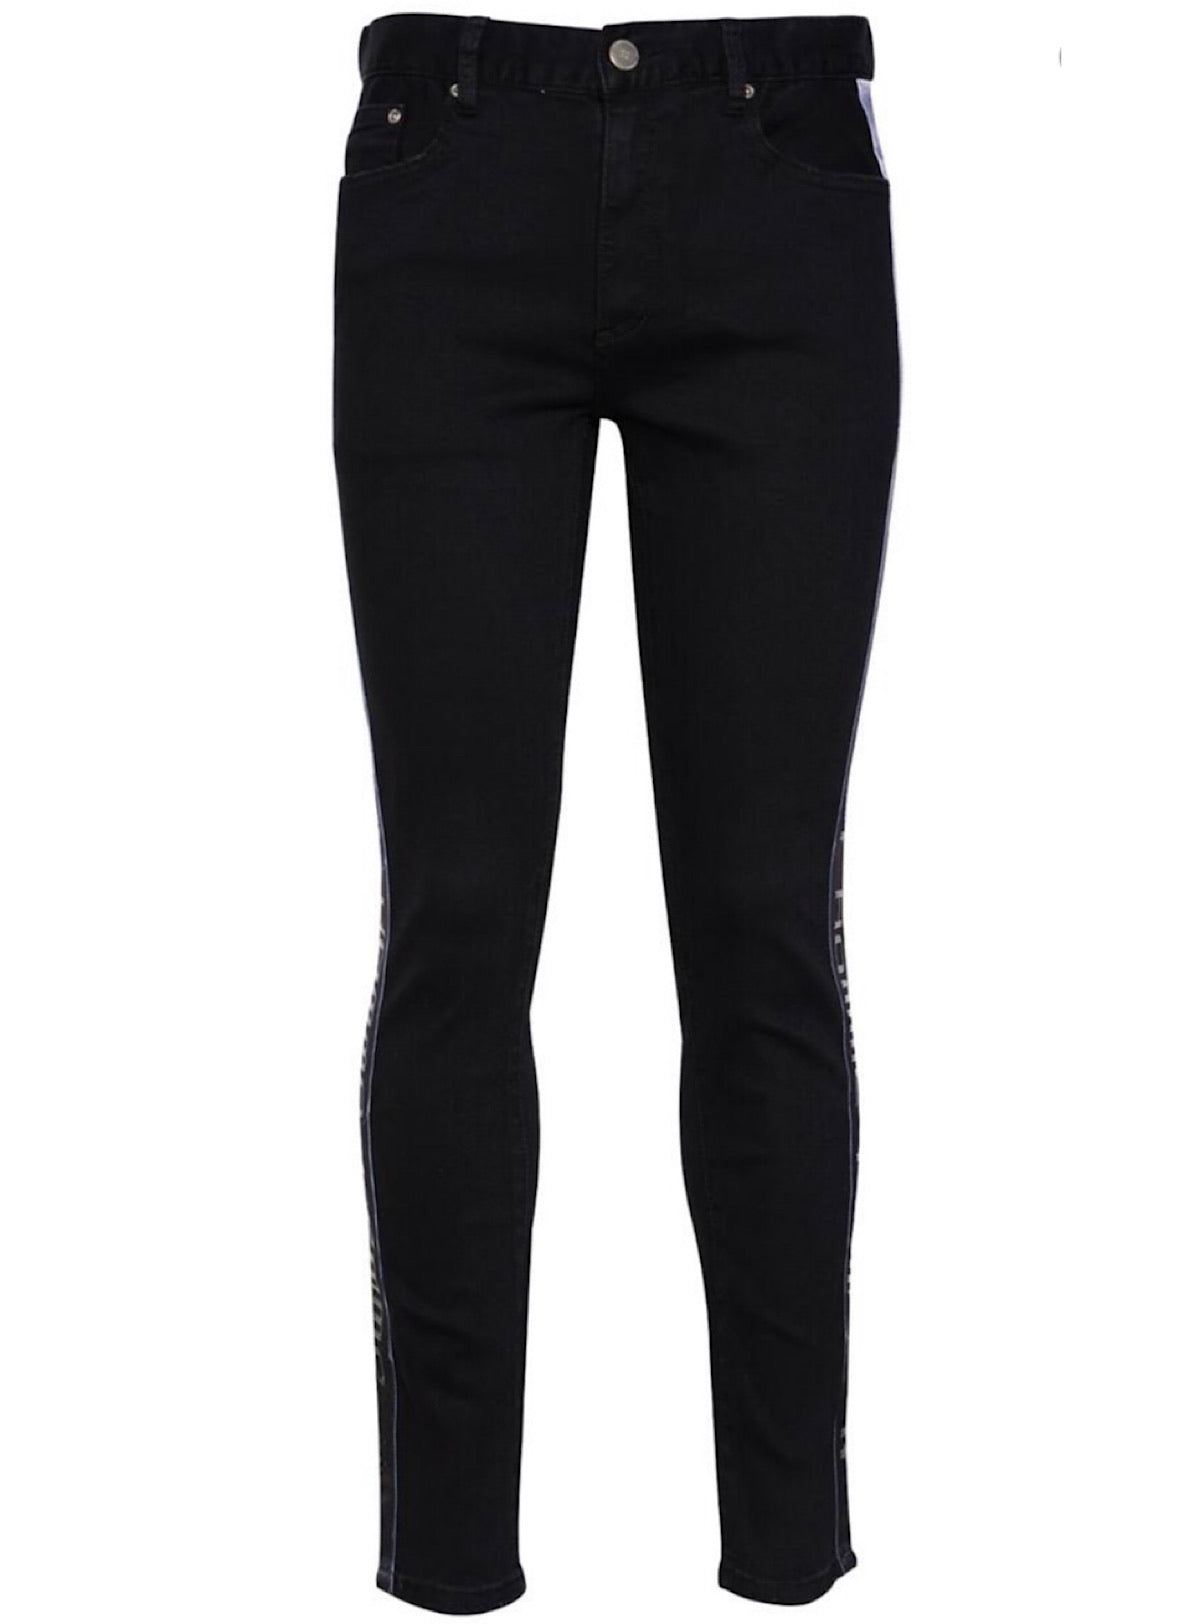 Homme+Femme Jeans - Tesla Denim - Black With Black Gradient - HFFW202020